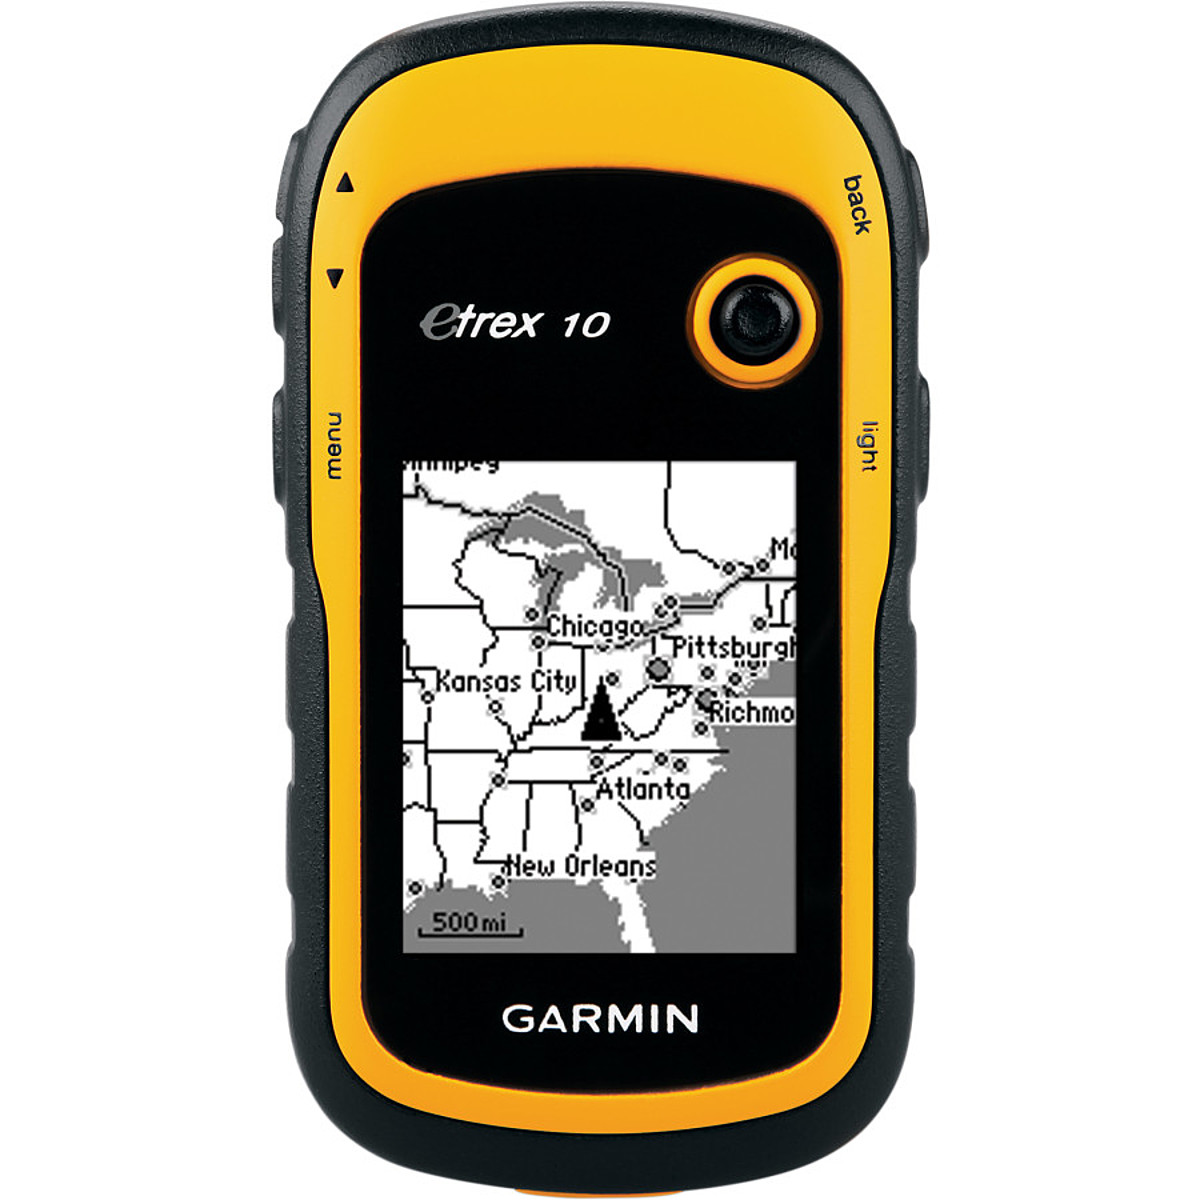 photo: Garmin eTrex 10 handheld gps receiver